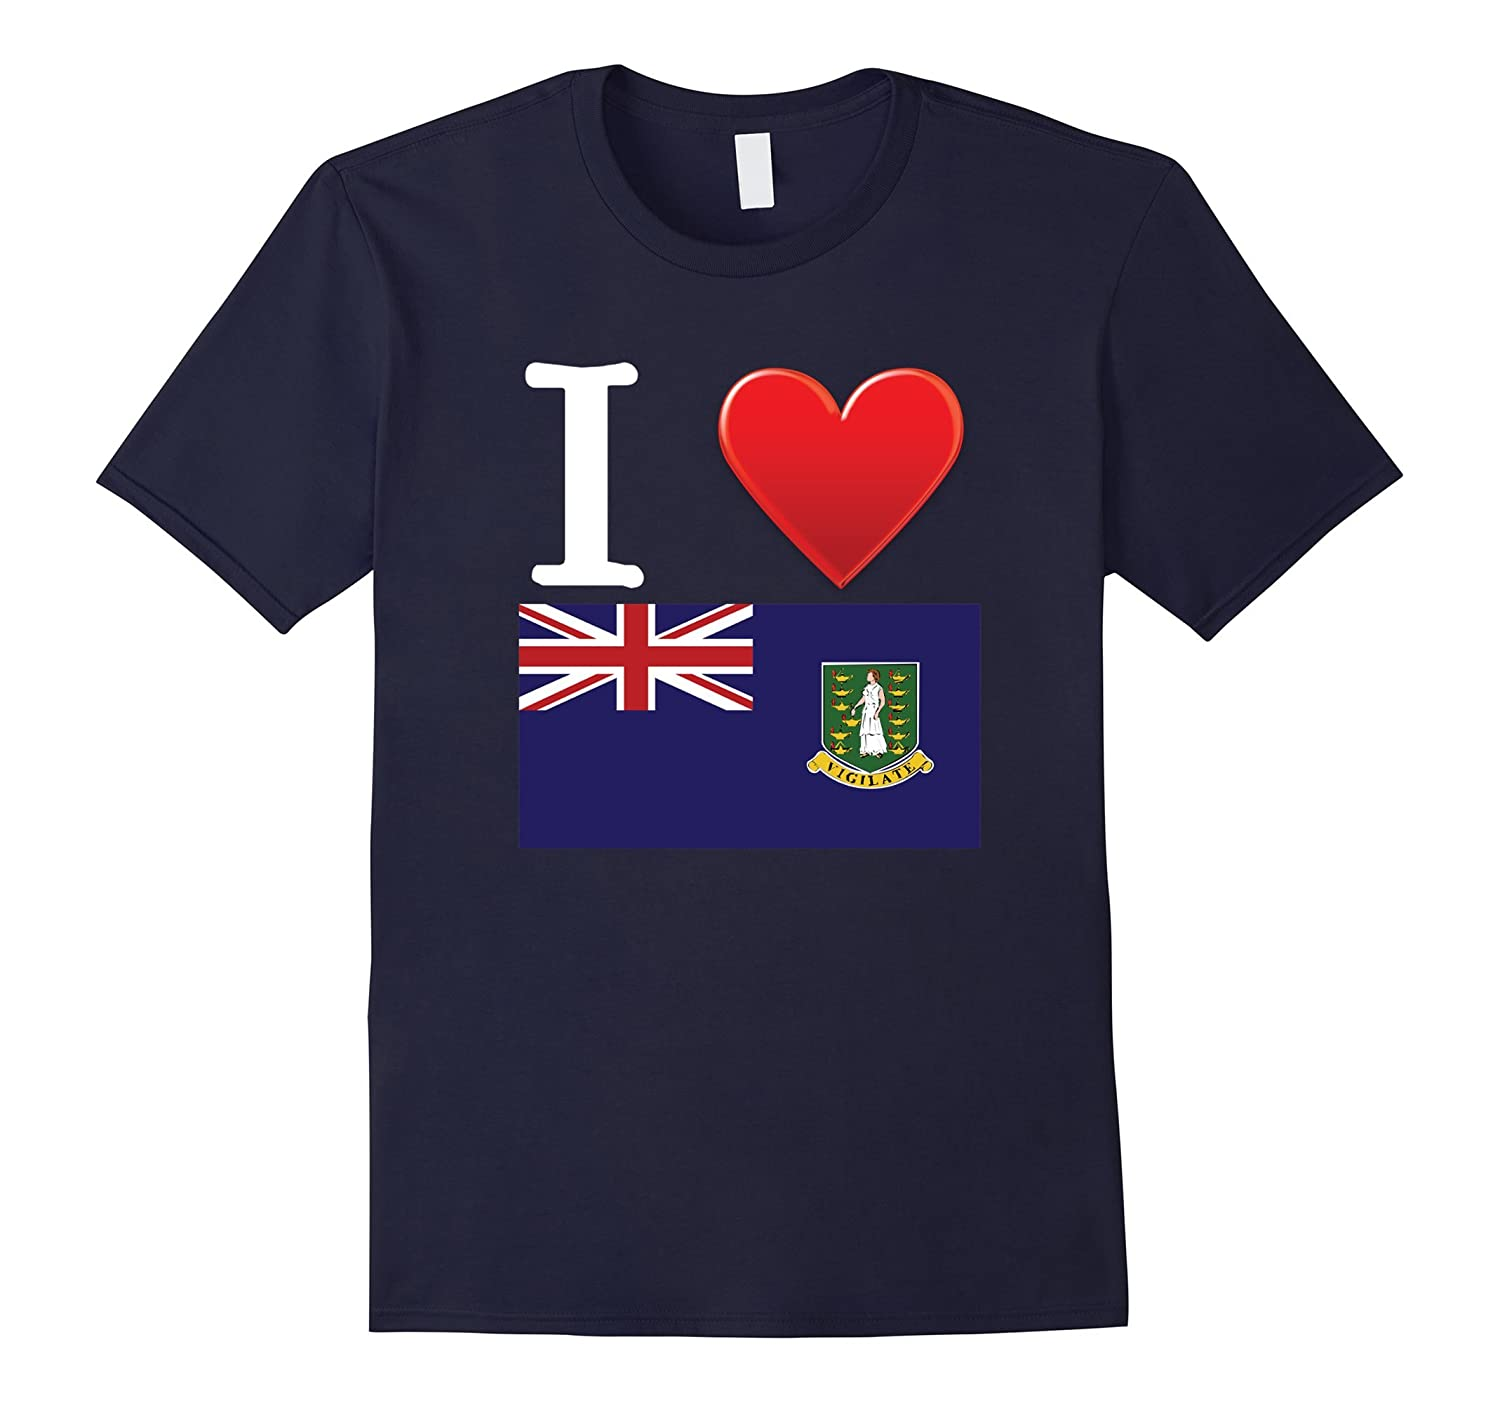 I Heart Love Virgin Islands UK Flag T-Shirt